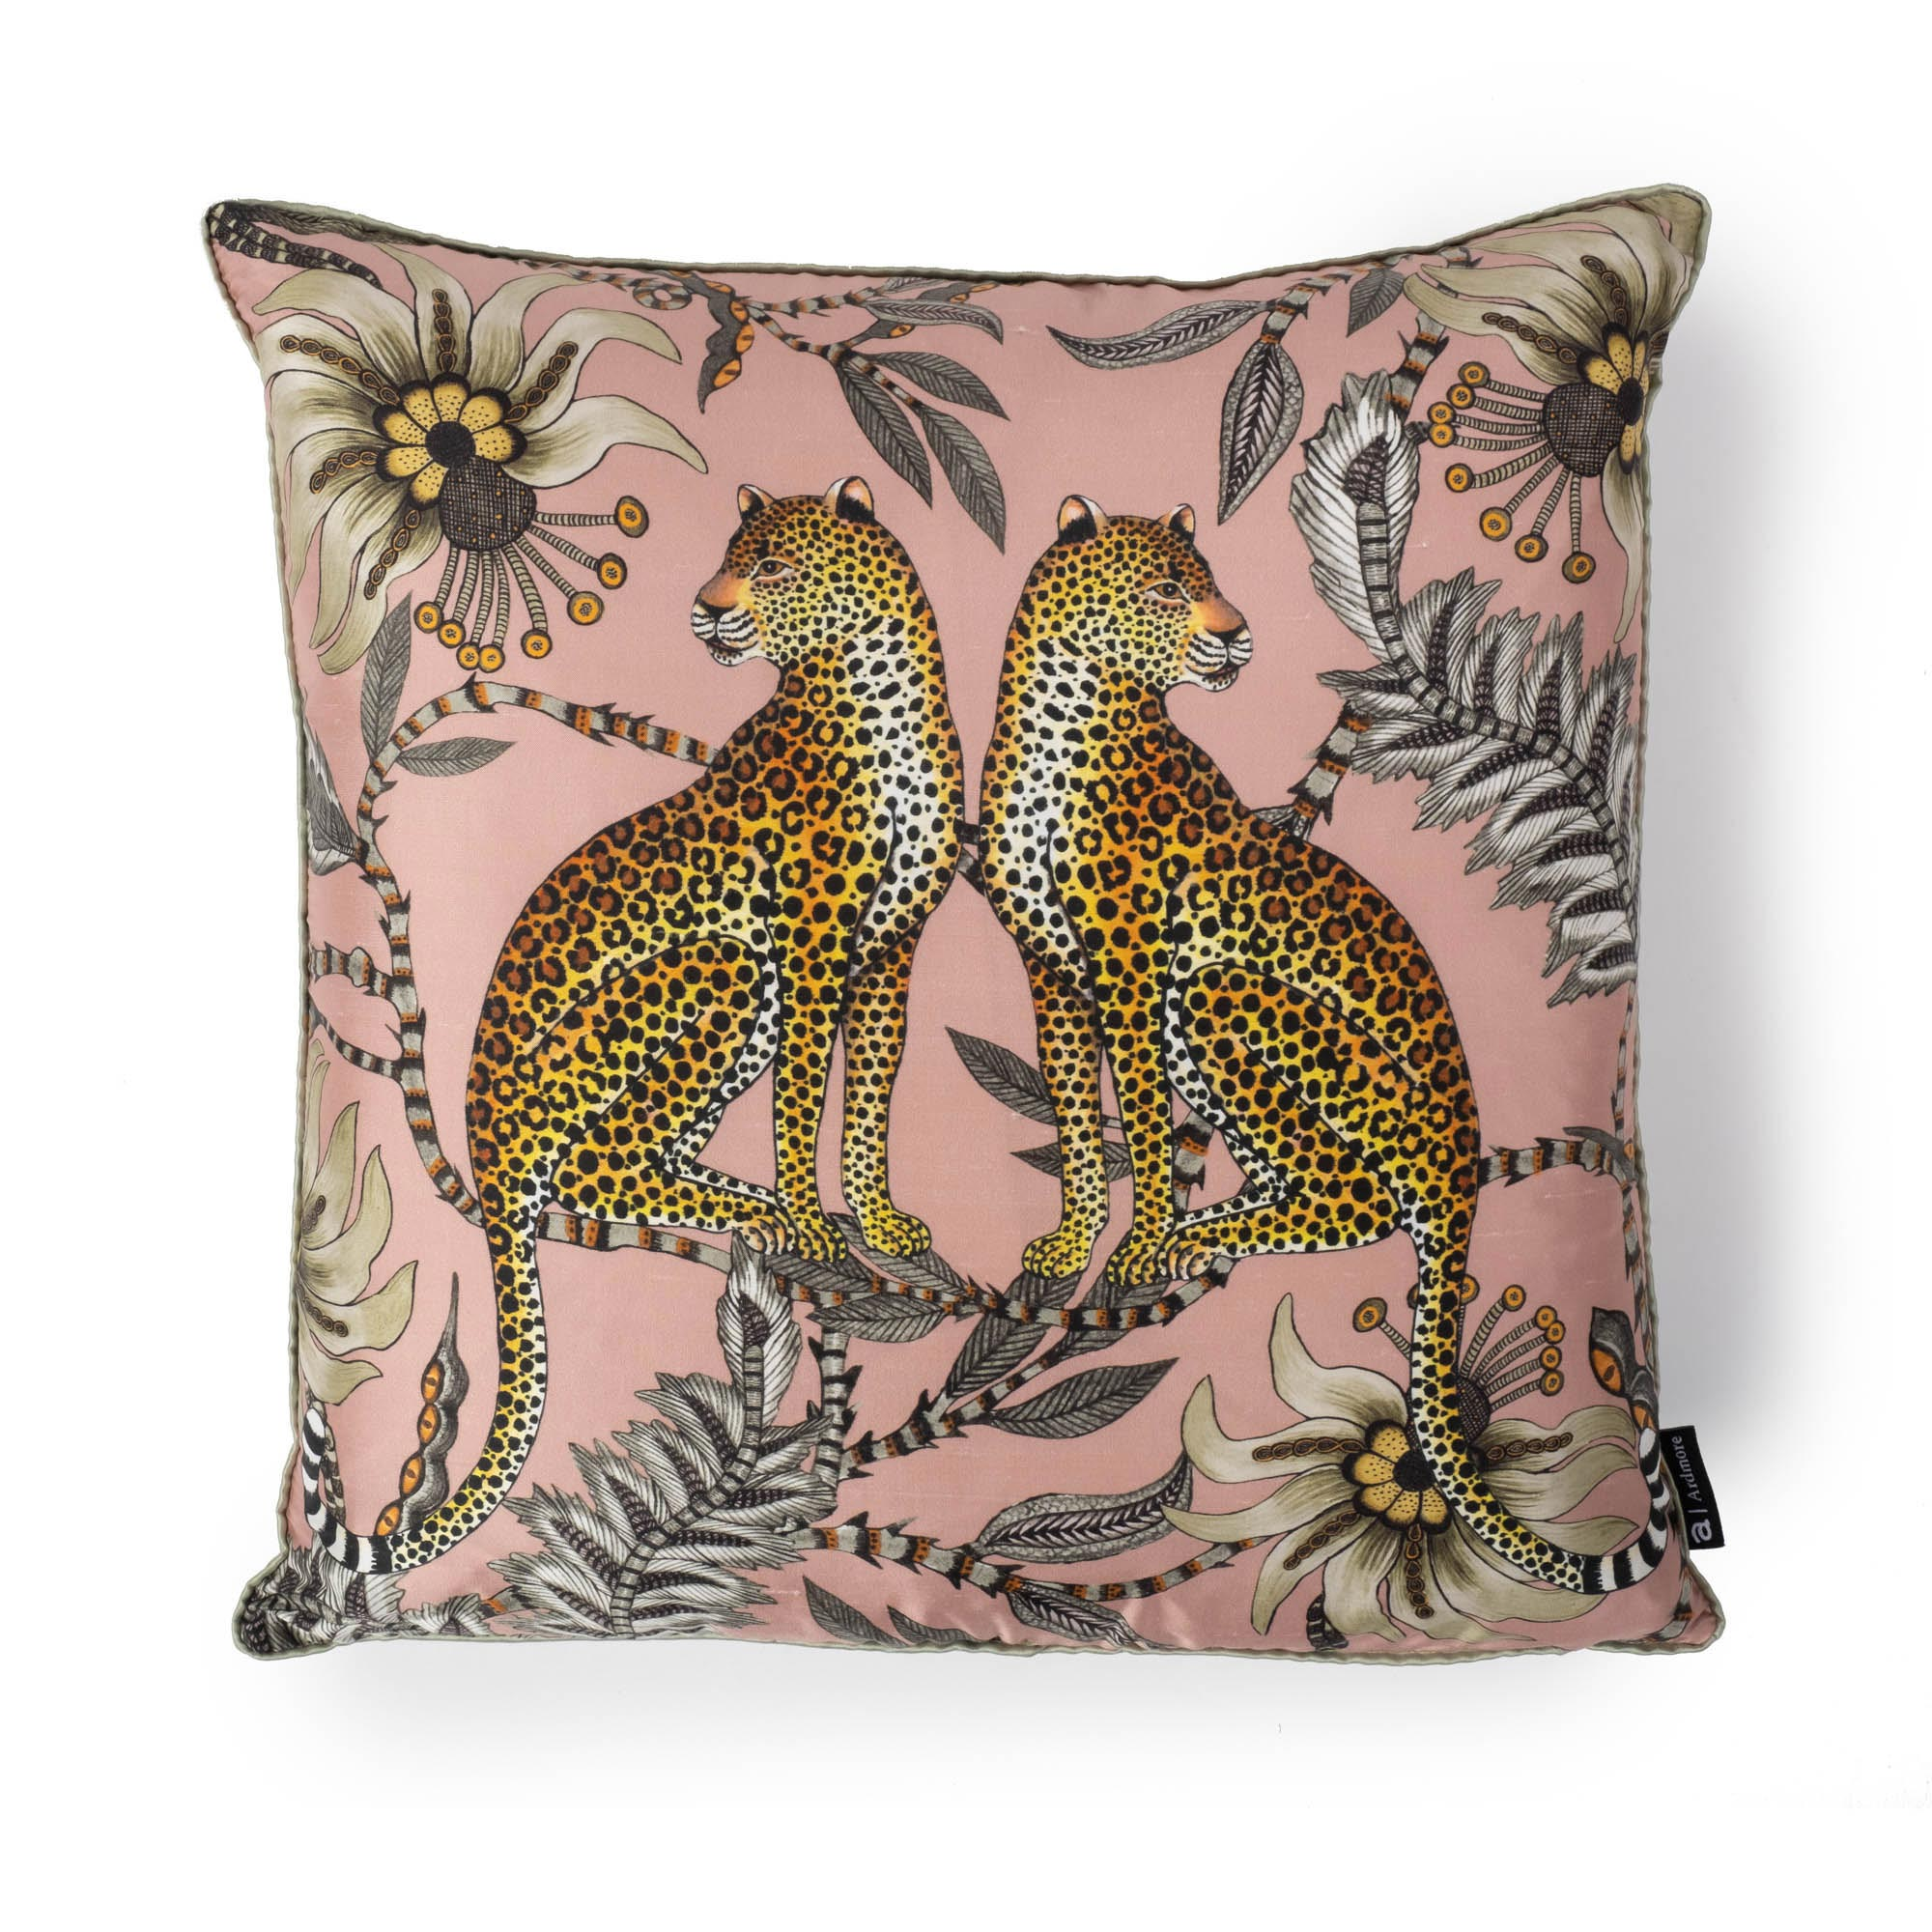 Lovebird Leopards Pillow - Silk - Magnolia